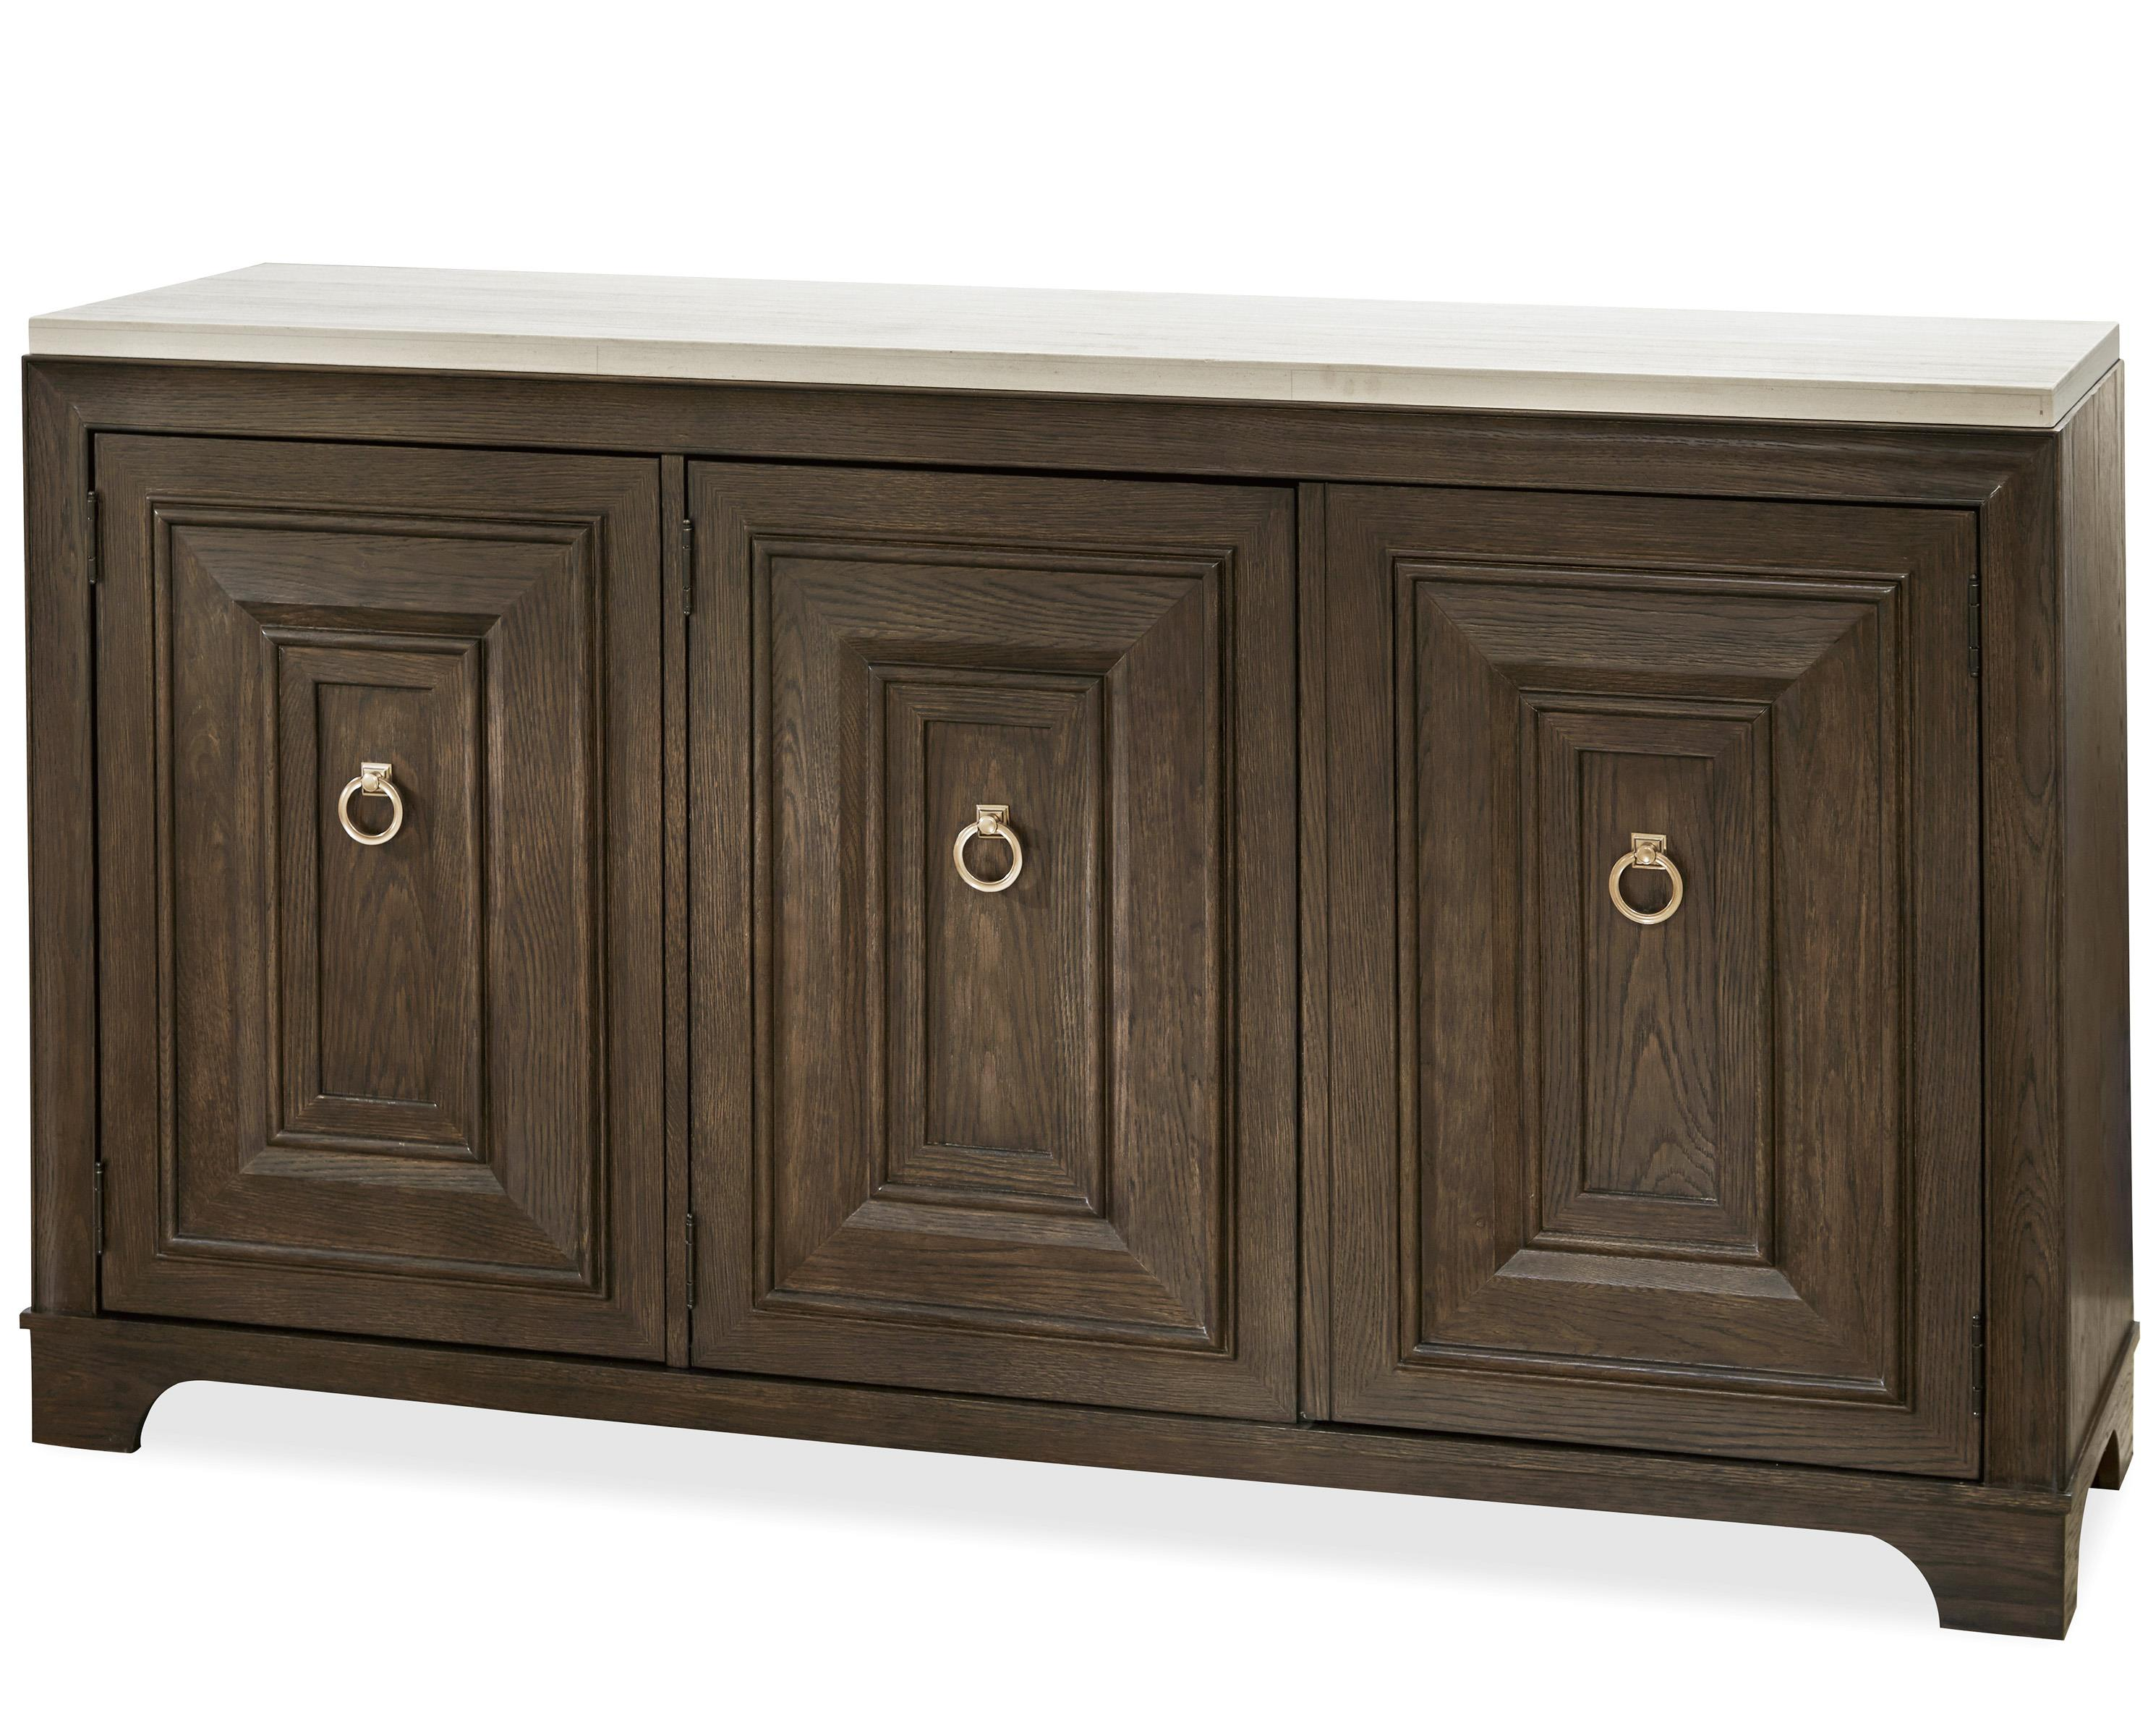 Universal California - Hollywood Hills Credenza - Item Number: 475675